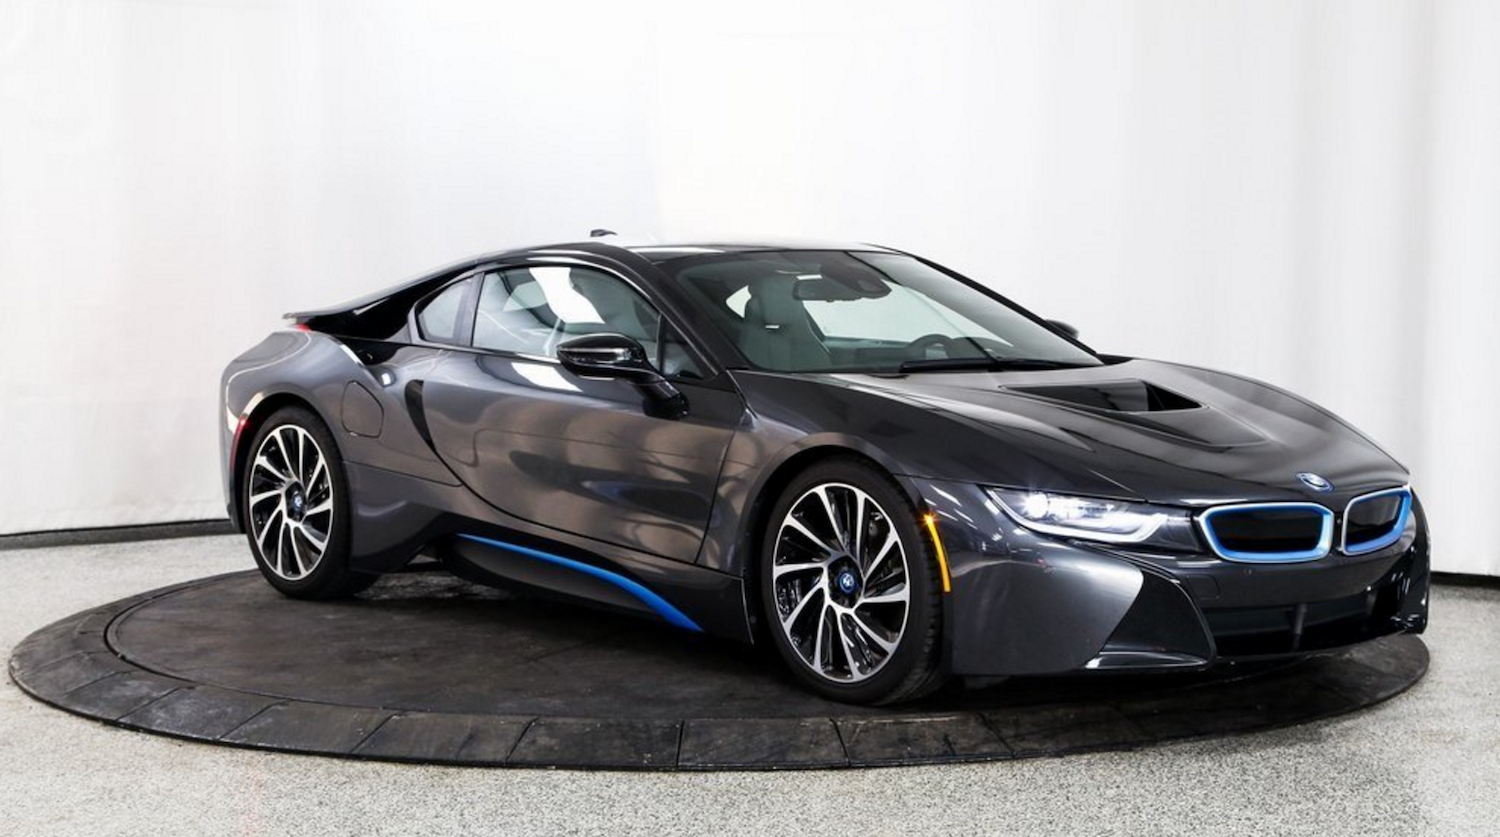 Rent BMW i8 From Exotic-Luxury-Rental.com